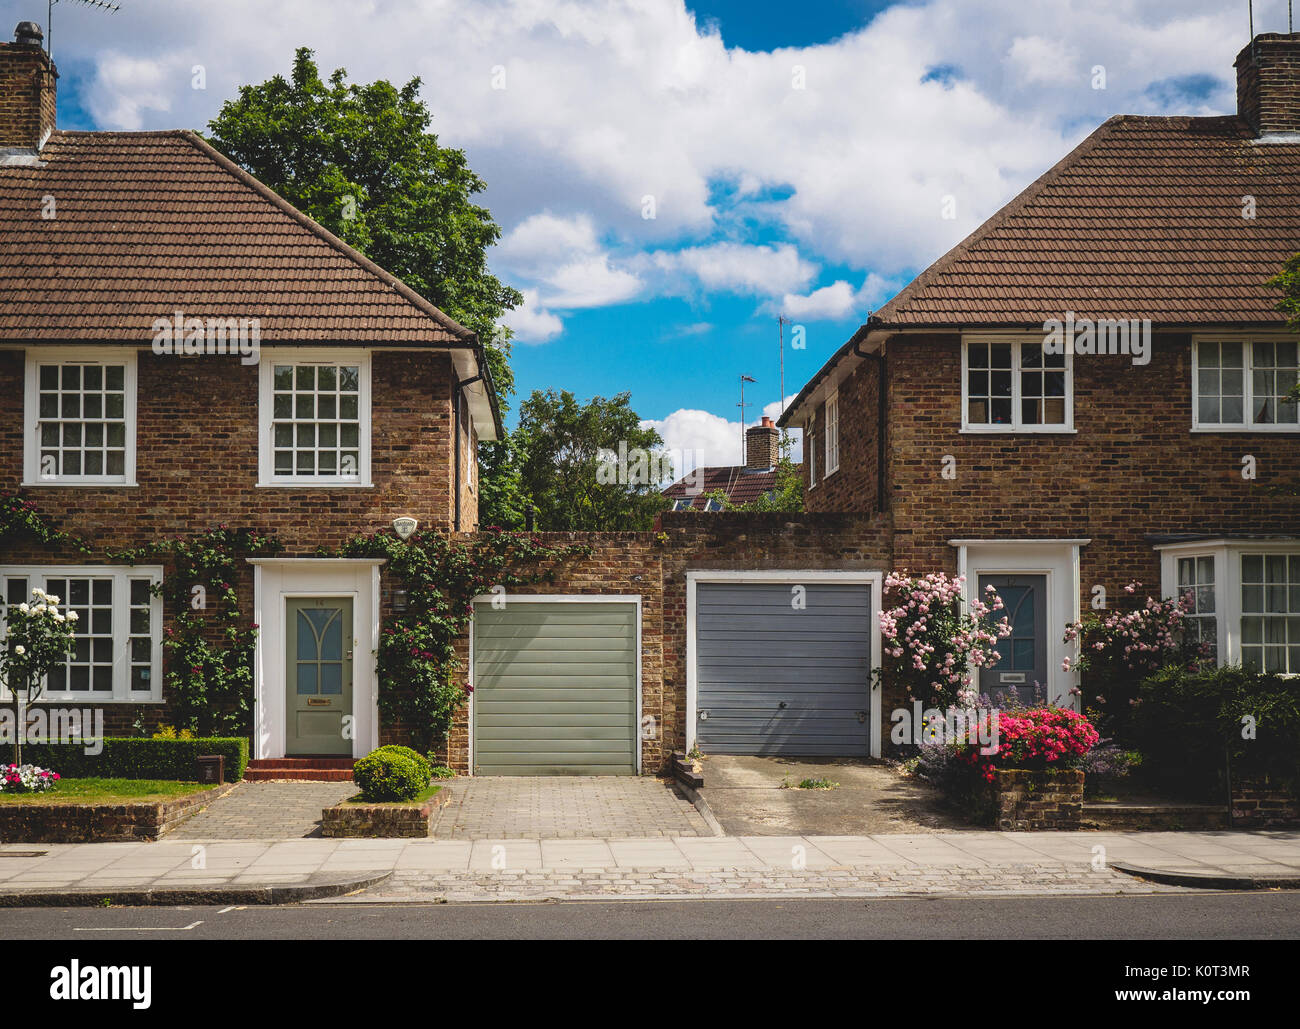 Typical semi-detached houses in North London (UK). July 2017. Landscape format. - Stock Image